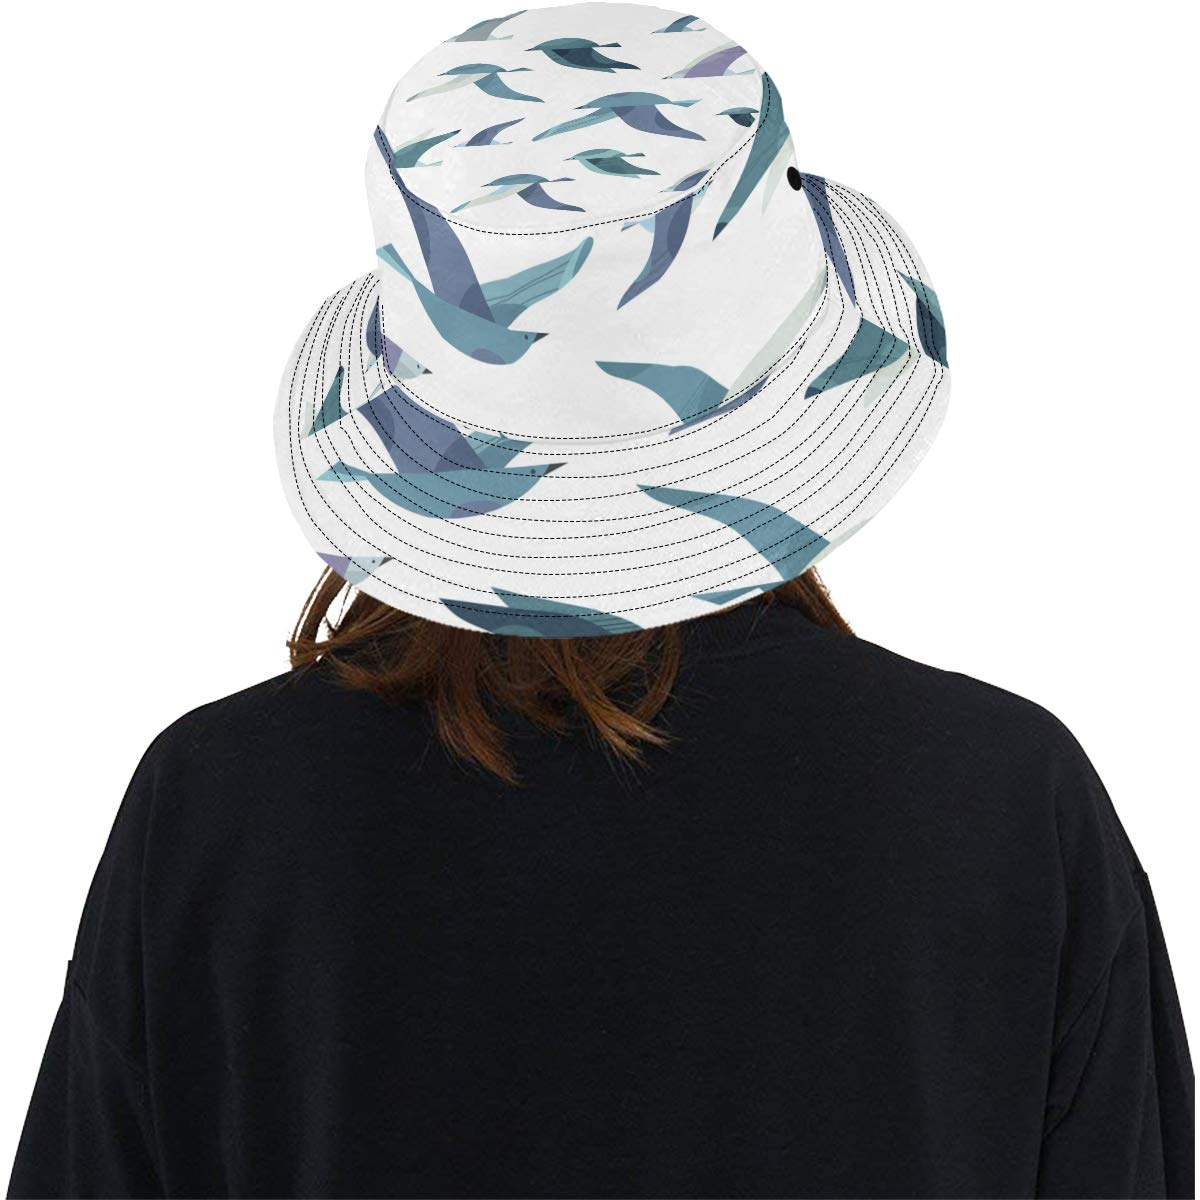 Set Different Flying Birds Cute New Summer Unisex Cotton Fashion Fishing Sun Bucket Hats for Kid Teens Women and Men with Customize Top Packable Fisherman Cap for Outdoor Travel